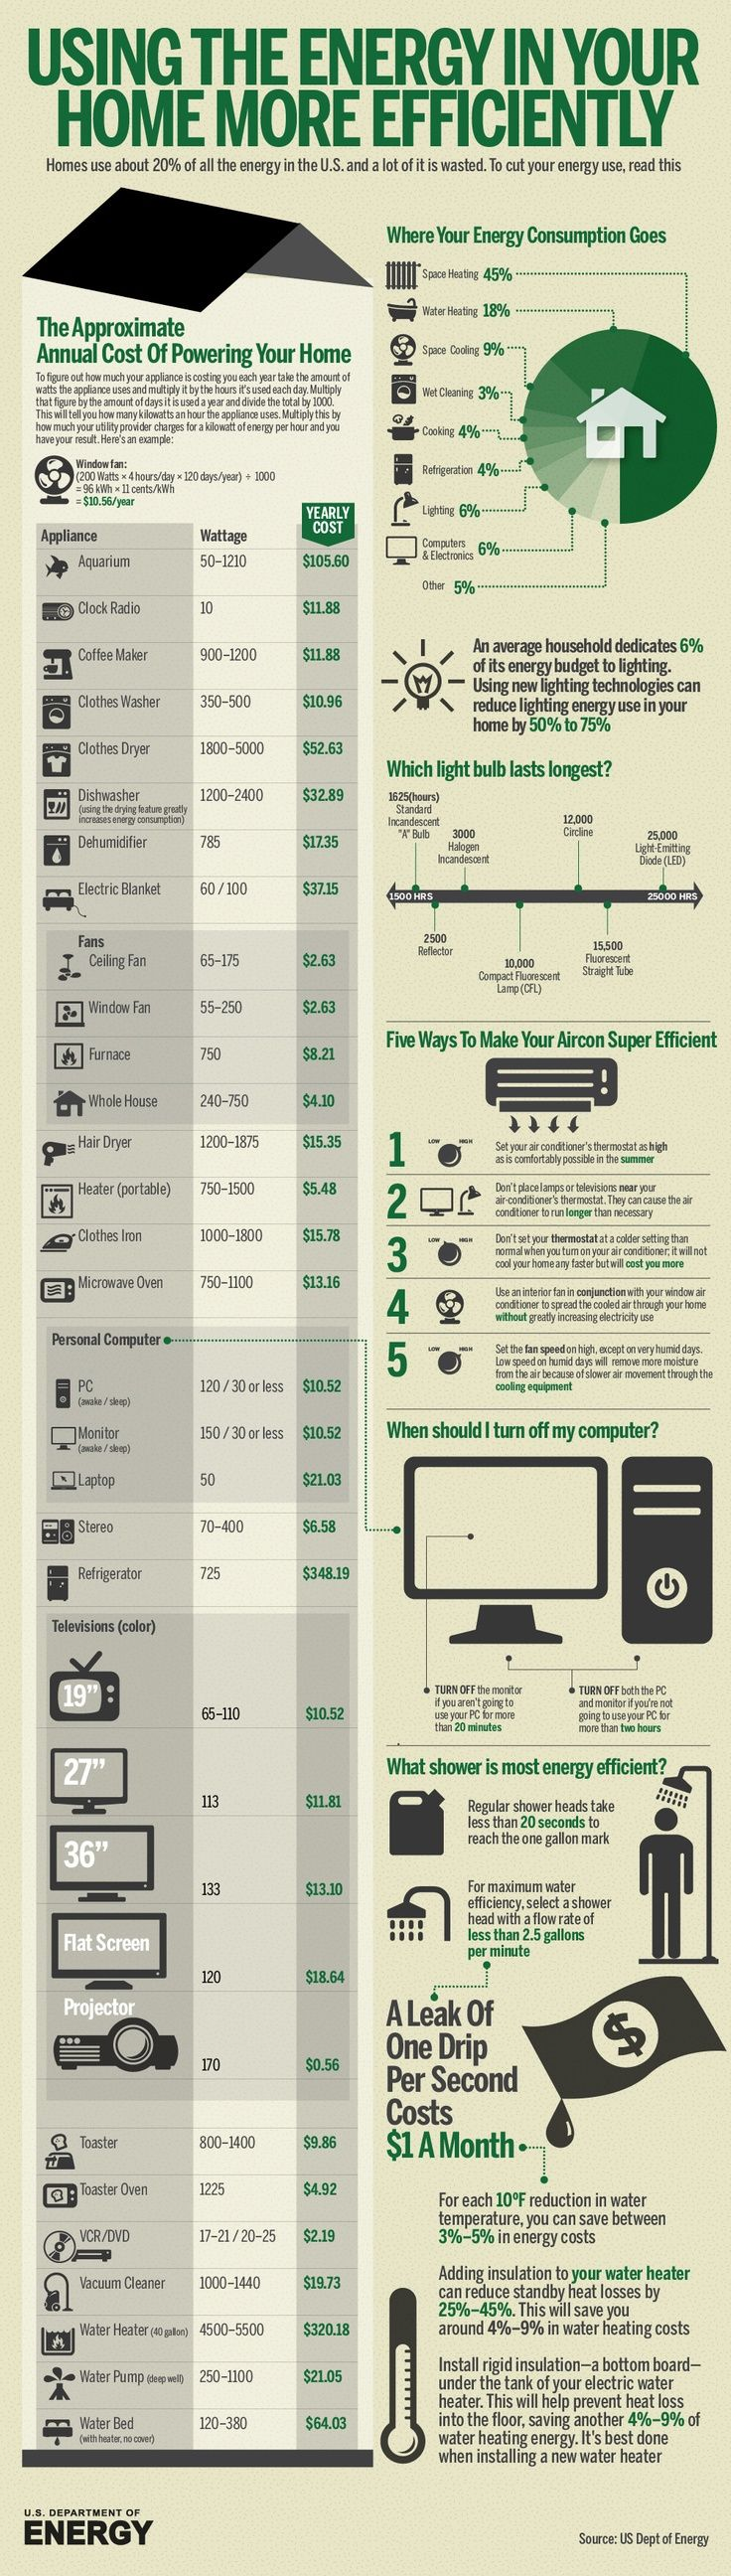 Where Your Energy Consumption Goes Infographic & 10 Tips to Save Energy [Infographic]